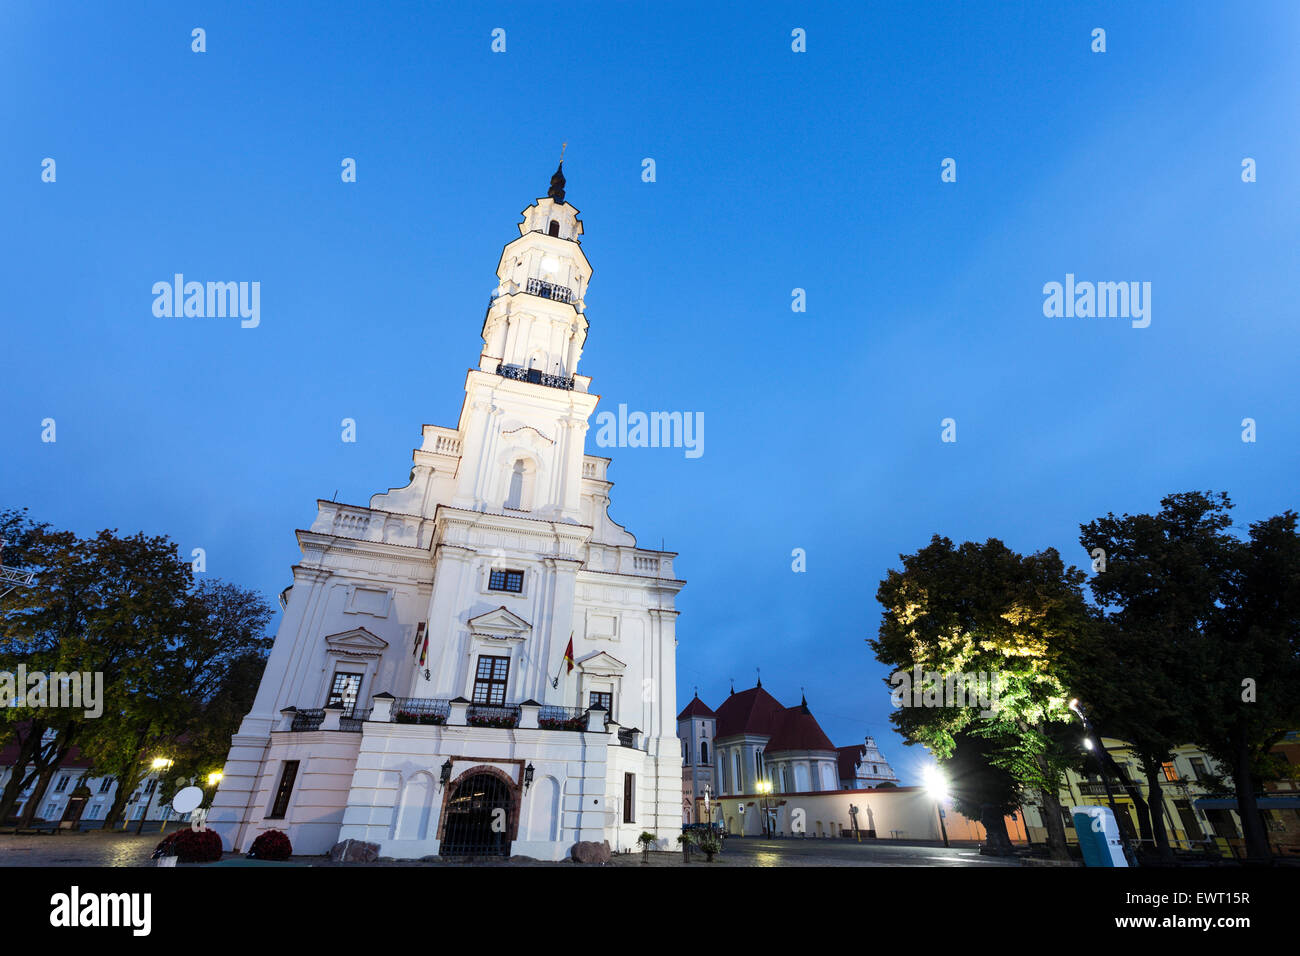 Town Hall in Kaunas at sunset. Kaunas, Lithuania. - Stock Image